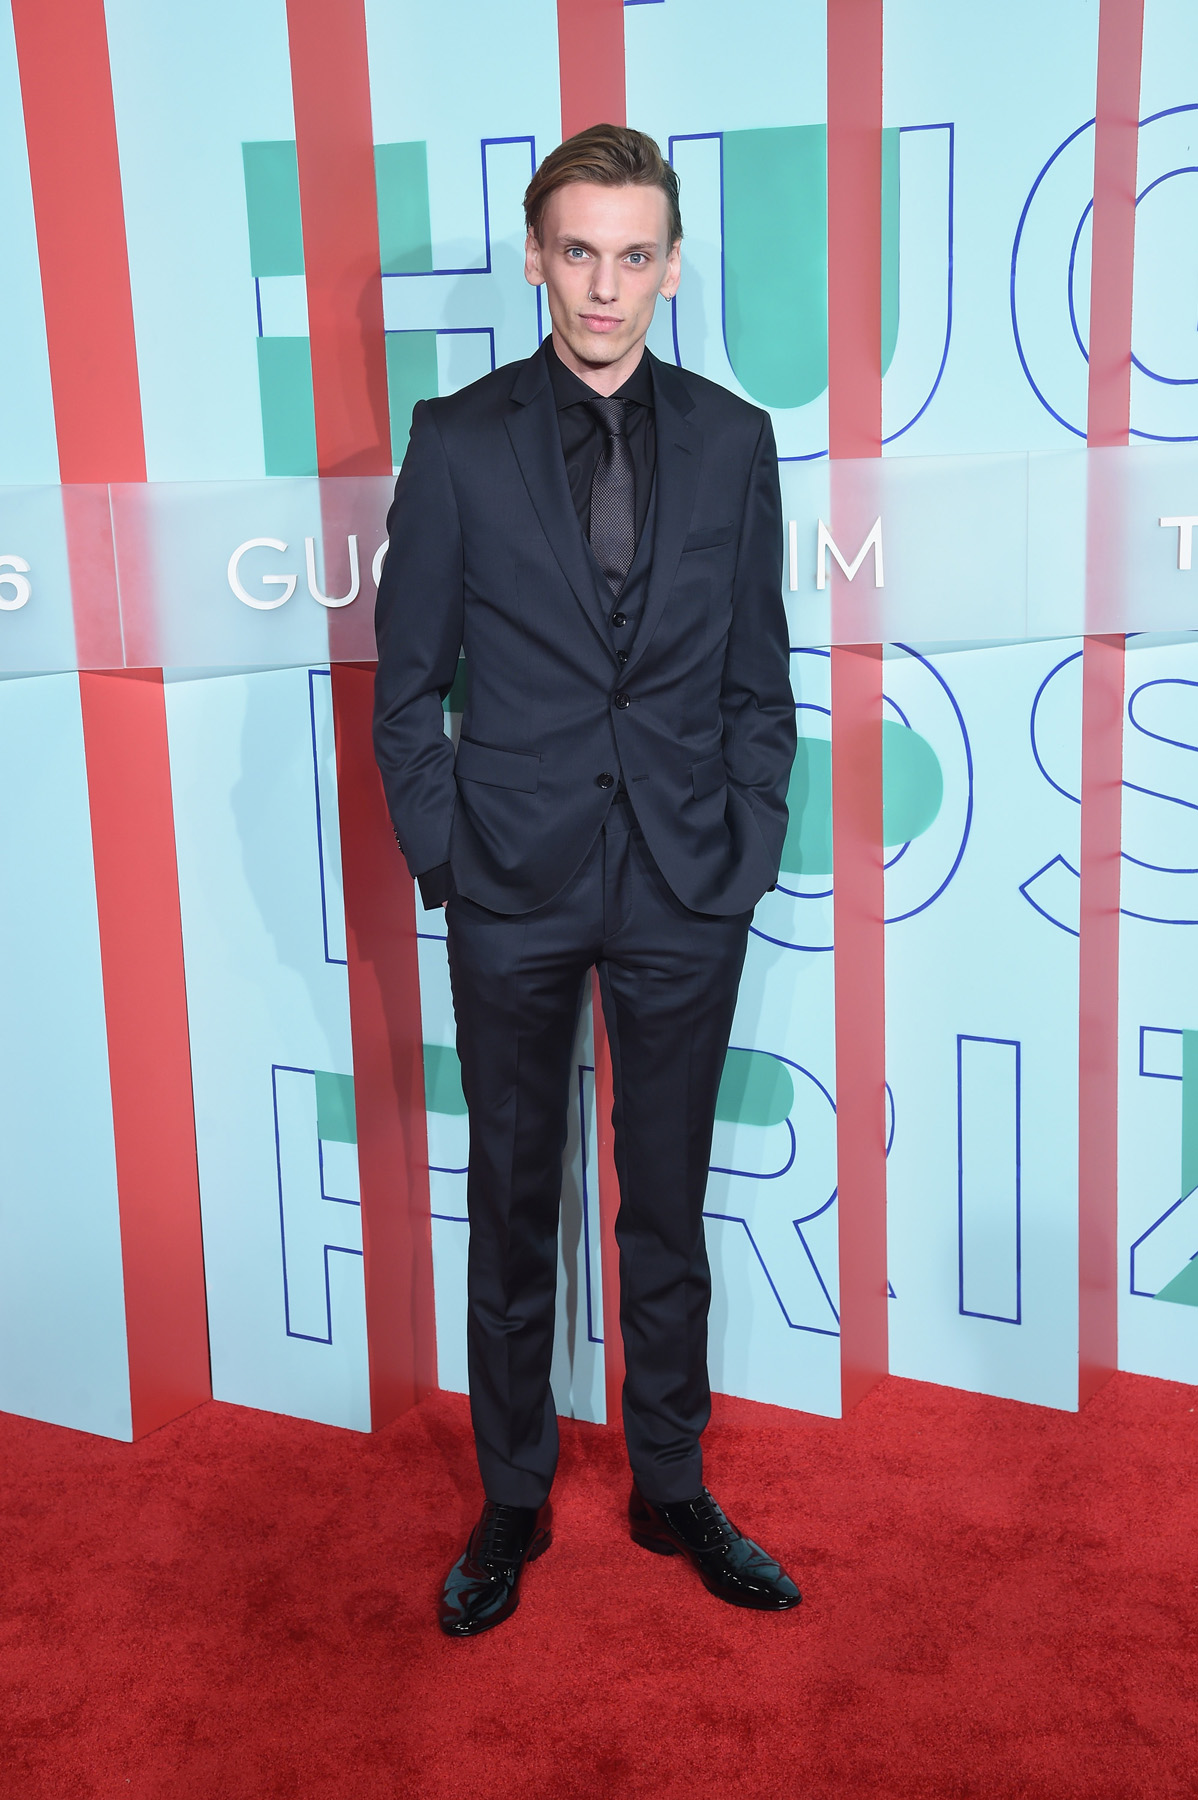 HUGO BOSS And GUGGENHEIM Celebrate The 20th Anniversary Of The HUGO BOSS Prize - Arrivals